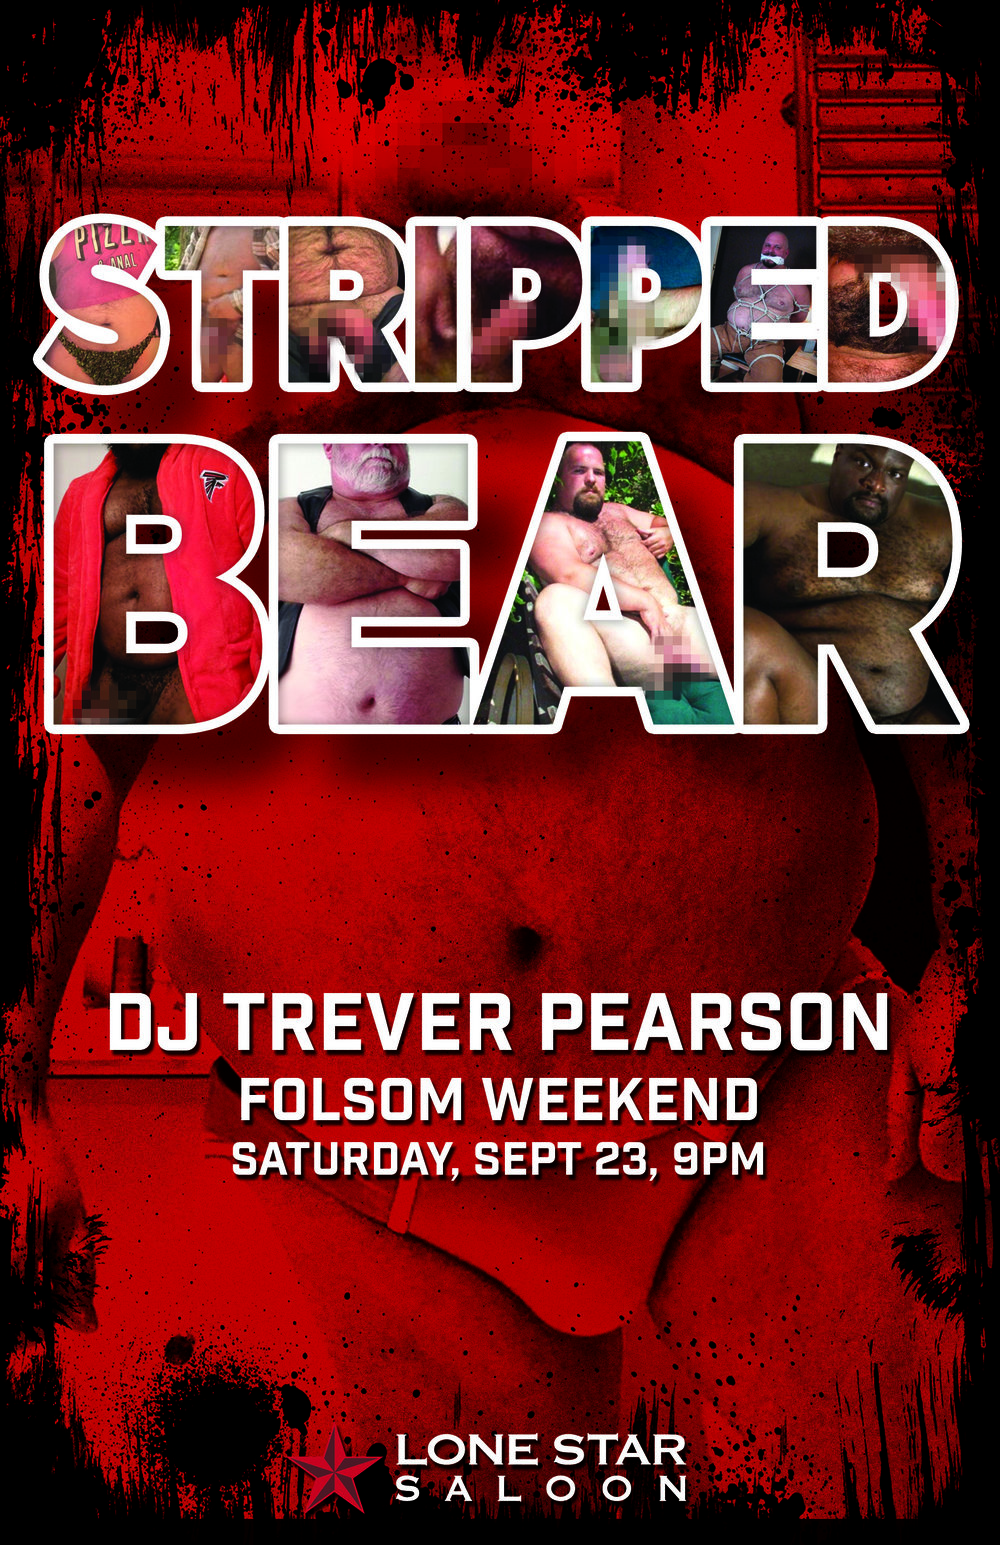 StrippedBear_01_pixelated.jpg